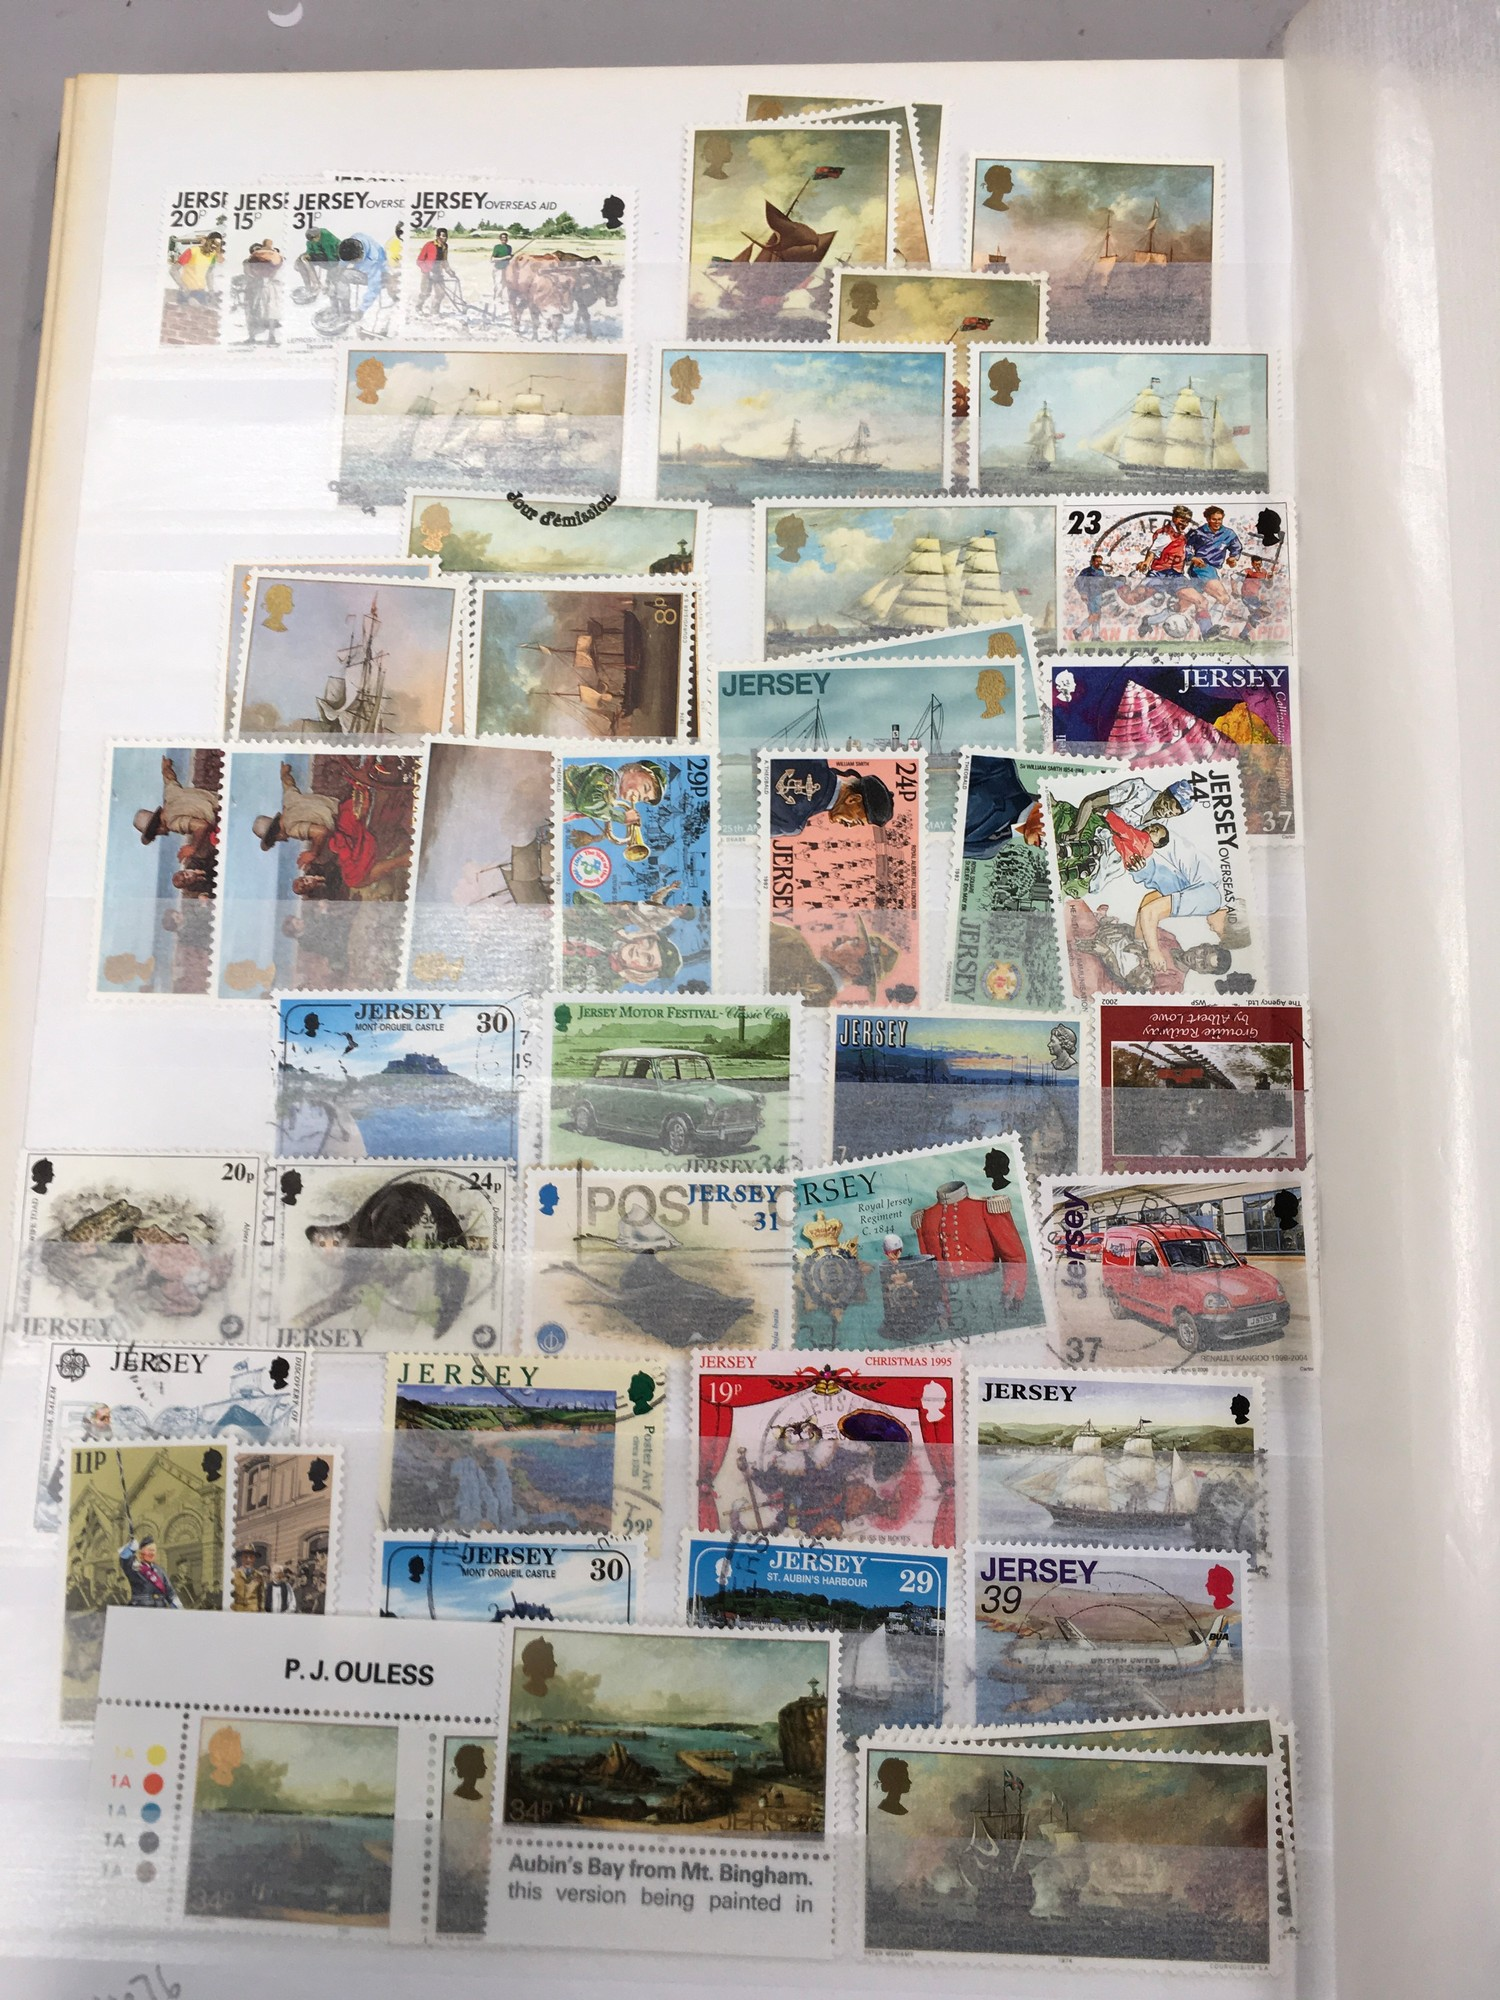 3 x Albums containing Channel Islands, Jersey Guernsey and Alderney over £800 in mint stamps. - Image 15 of 21